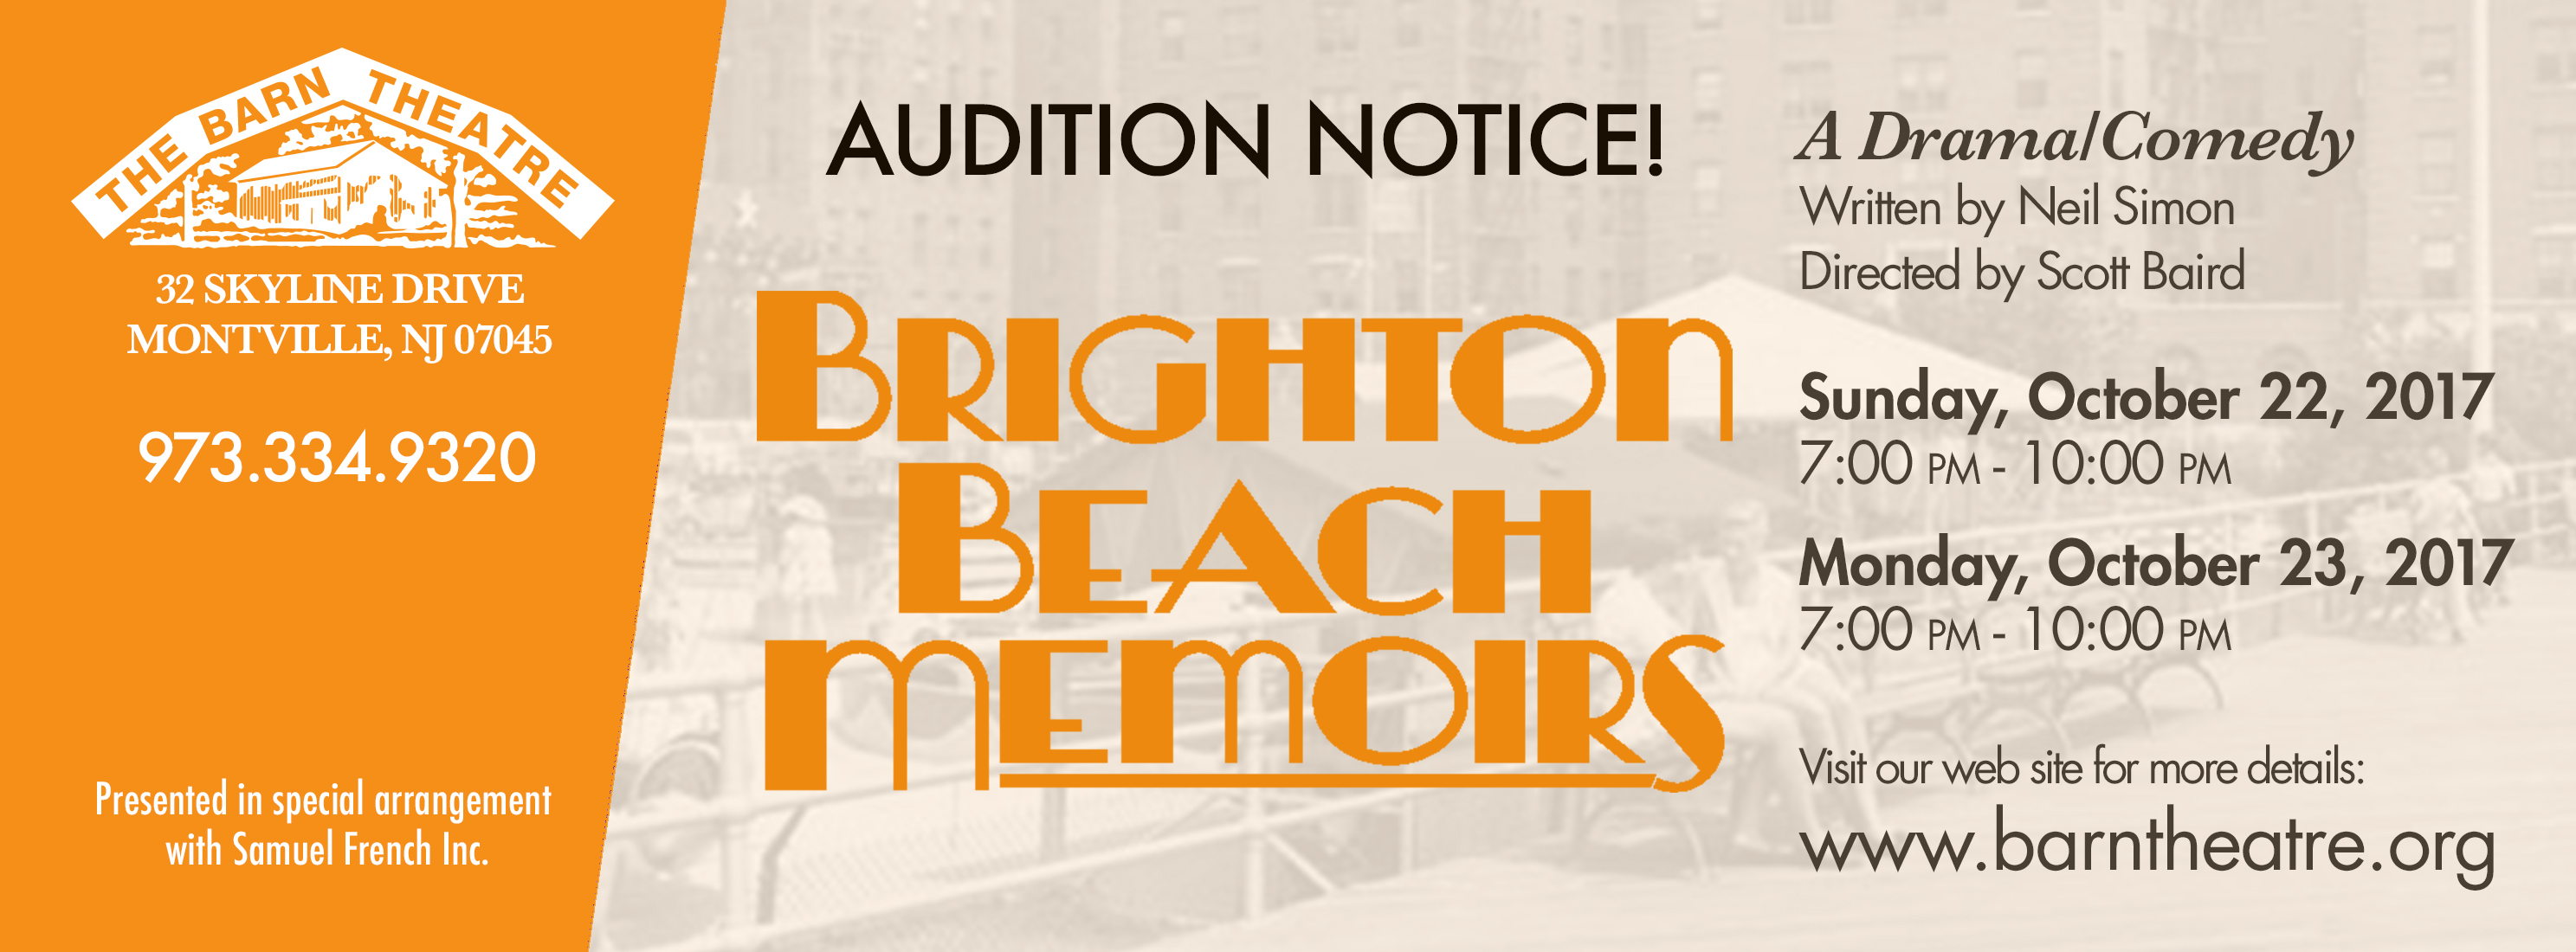 Brighton Beach Memoirs Auditions